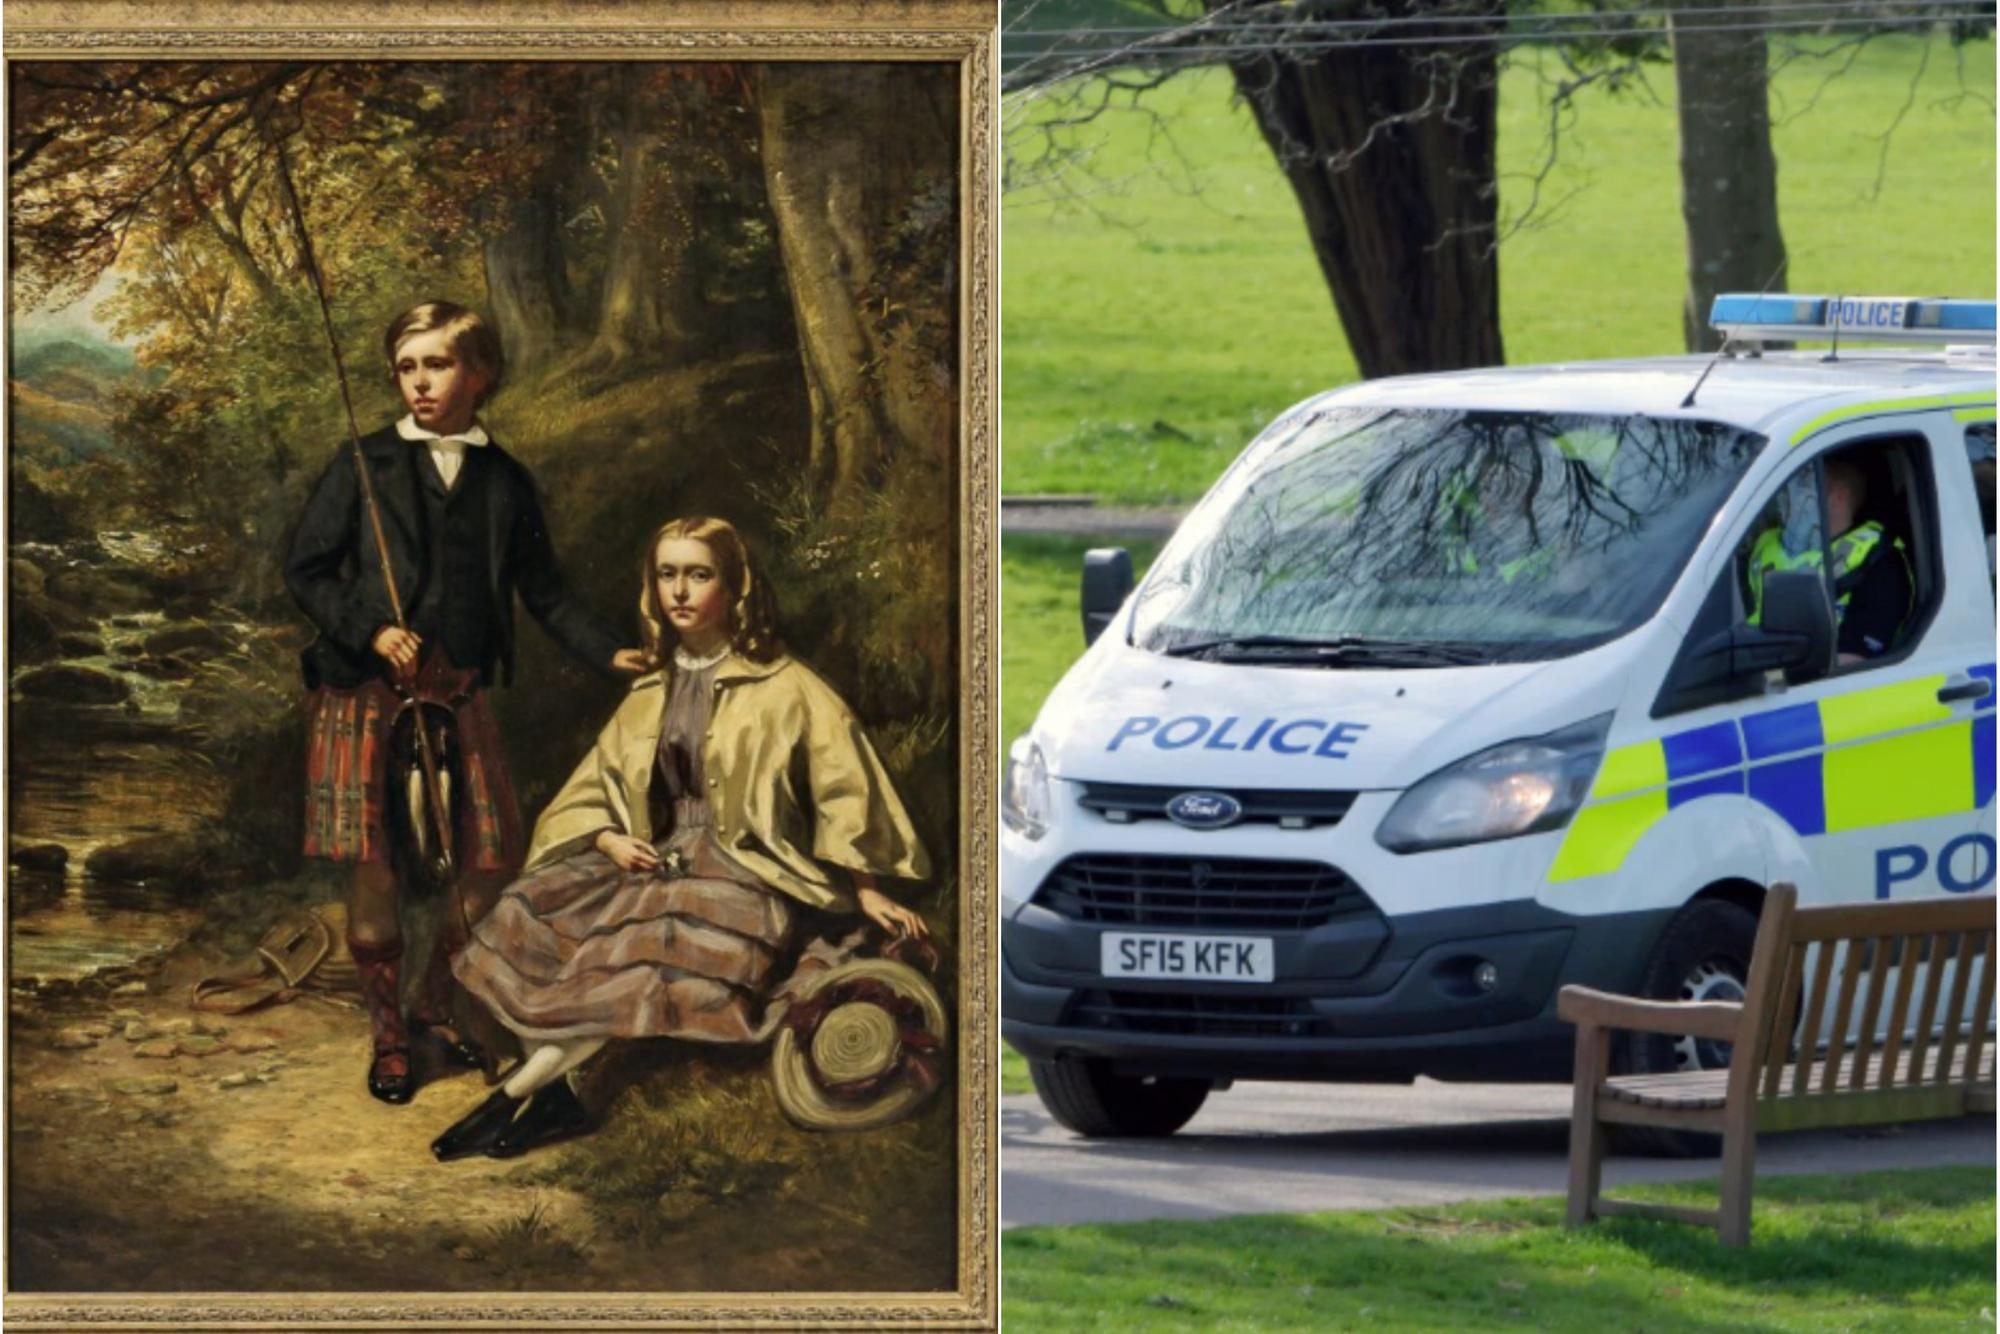 Police hunt art thief after valuable painting stolen from Edinburgh property